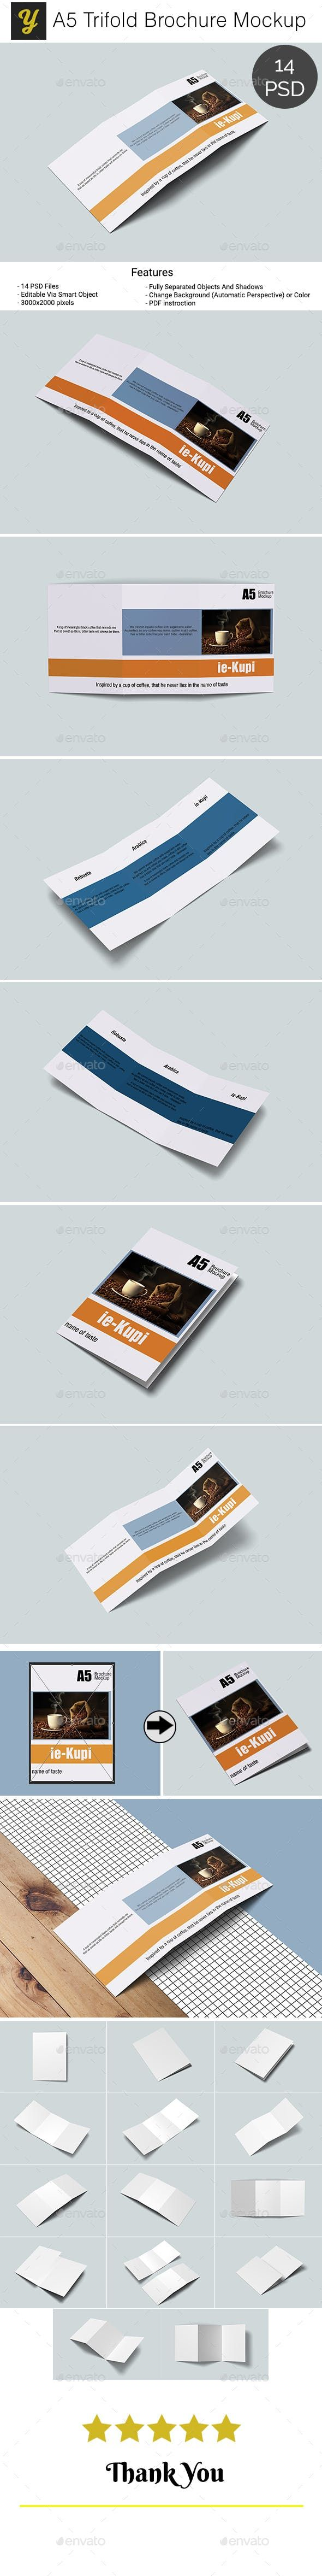 Download A5 Trifold Brochure Mockup By Yellowgold Graphicriver Buy Only 9 Or Subscribe Unlimited Graphic Item Web Brochures Mockups Trifold Brochure Brochure Print